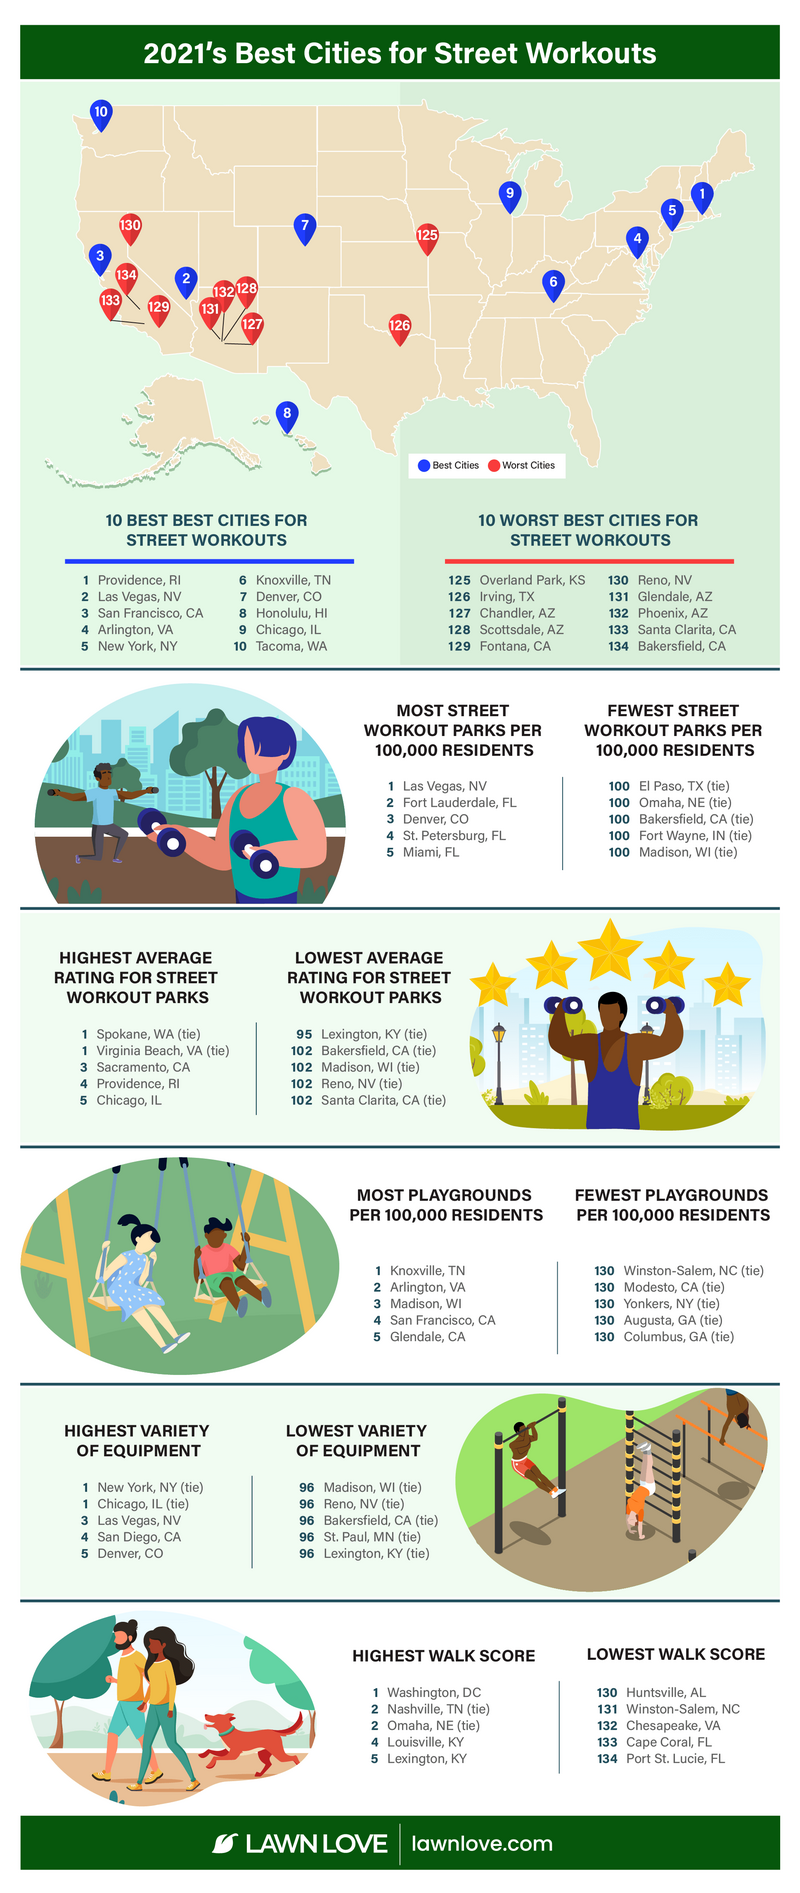 infographic showing the best and worst cities for street workouts